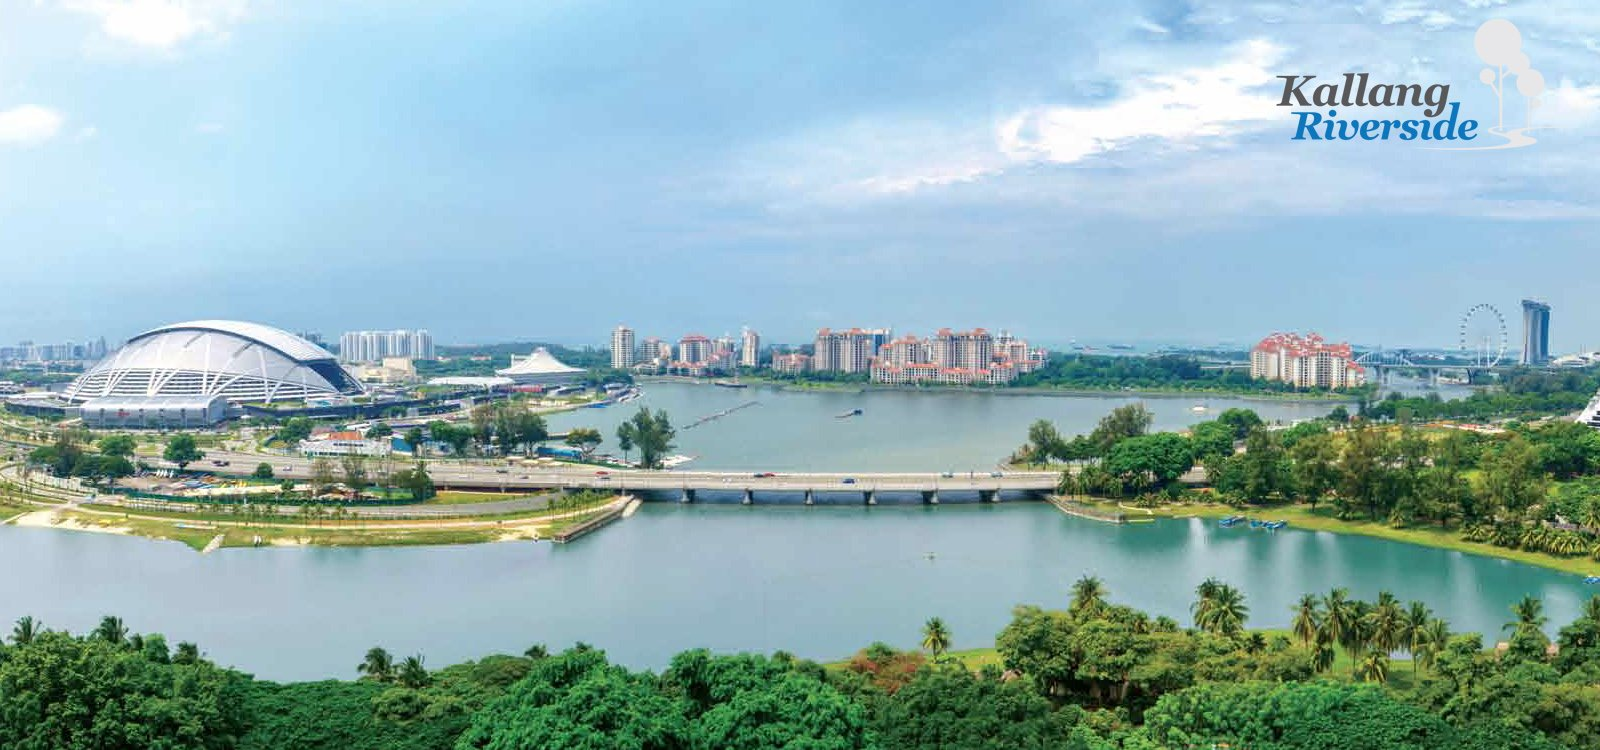 Kallang Riverside View